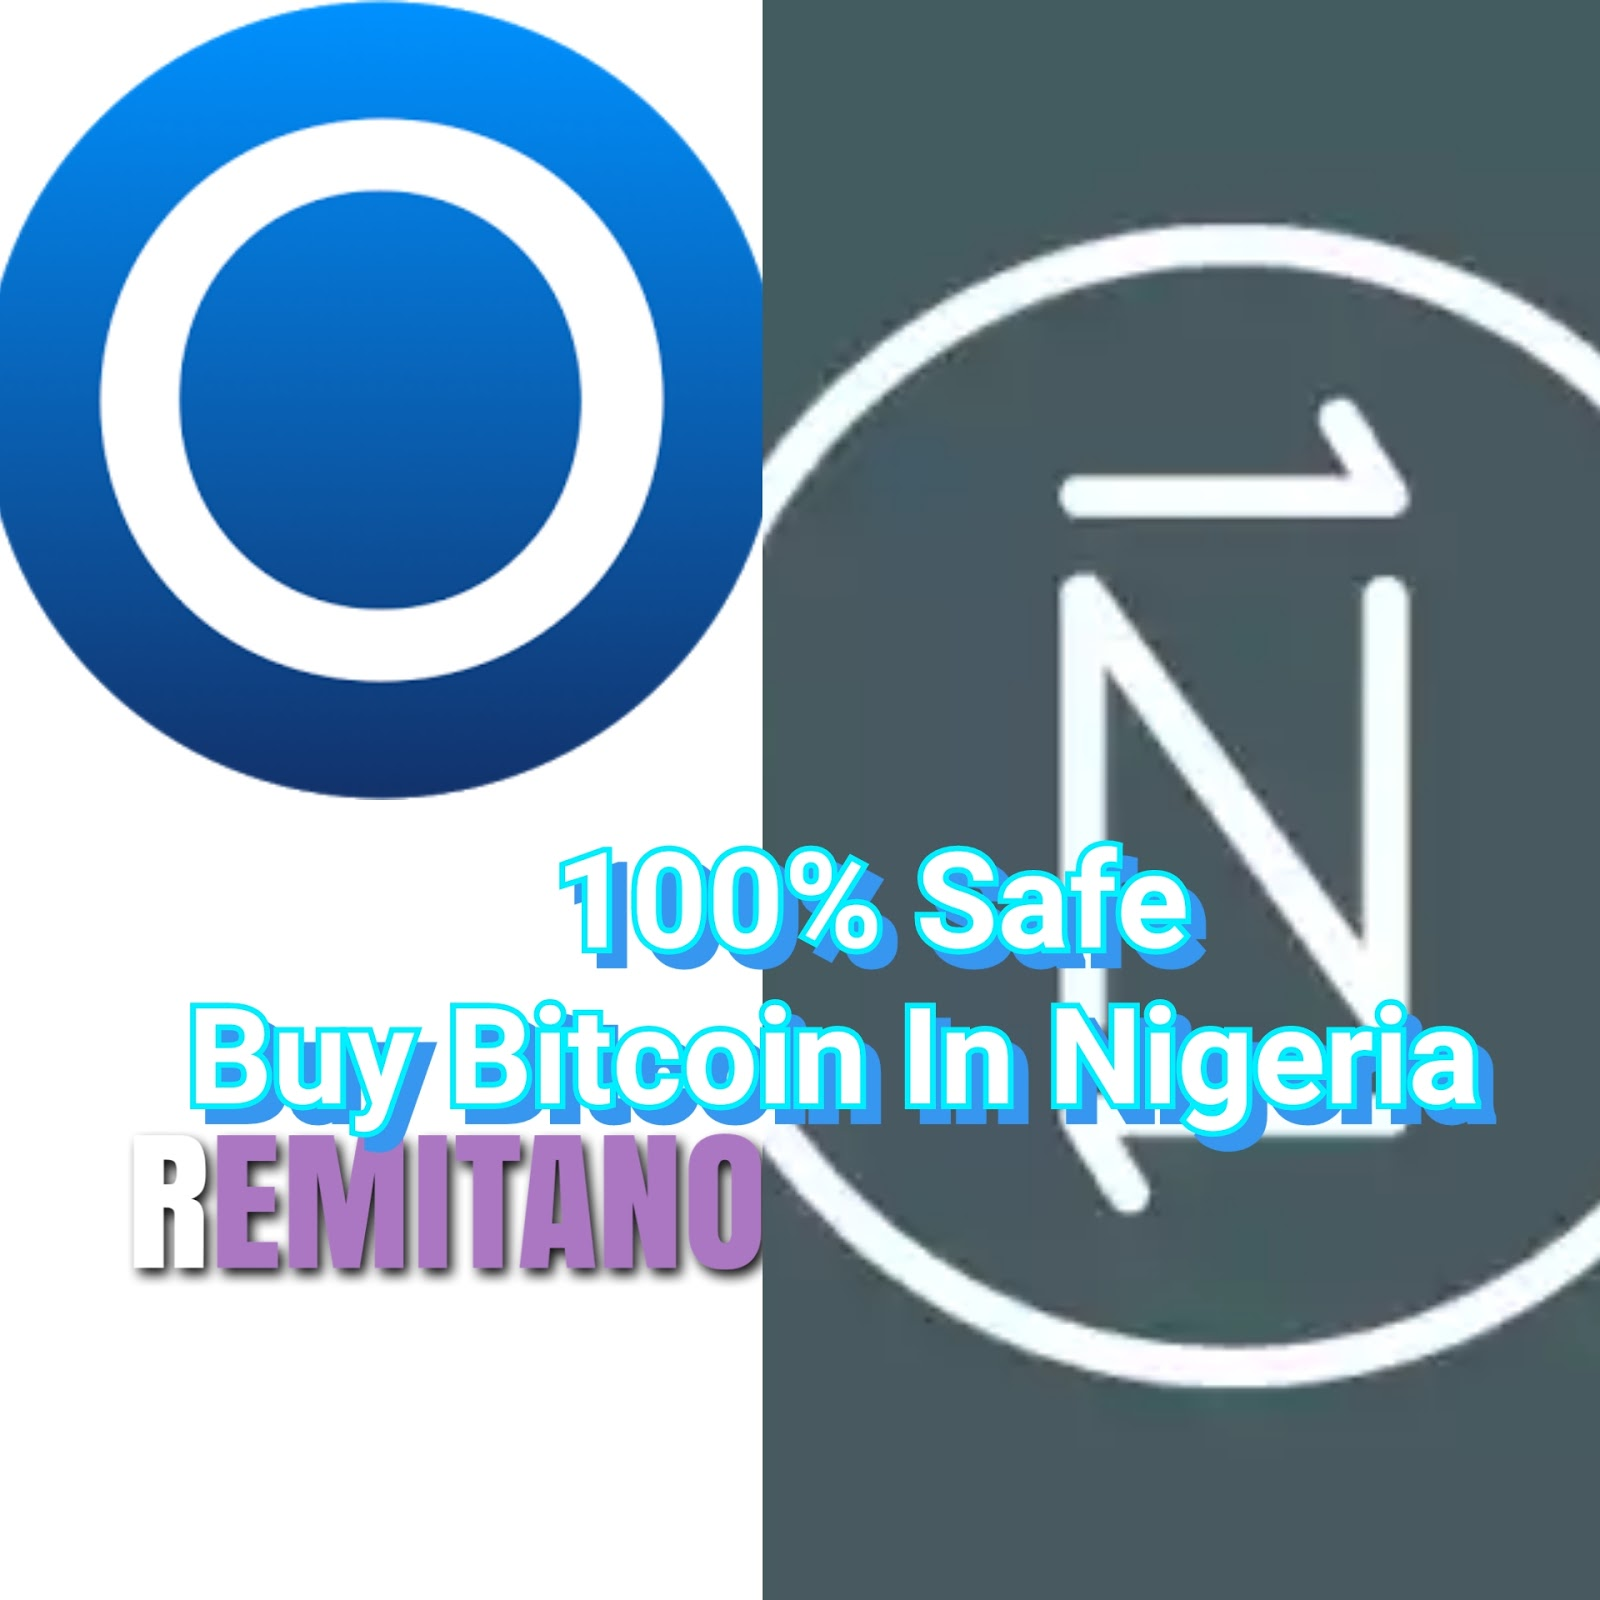 Where to buy and sell bitcoin in nigeria 100 secure bitcoin trade with the price if bitcoin predicted to hit the 10000 by the end of the year buying bitcoin seems a viable option because mining one can be pretty ccuart Choice Image